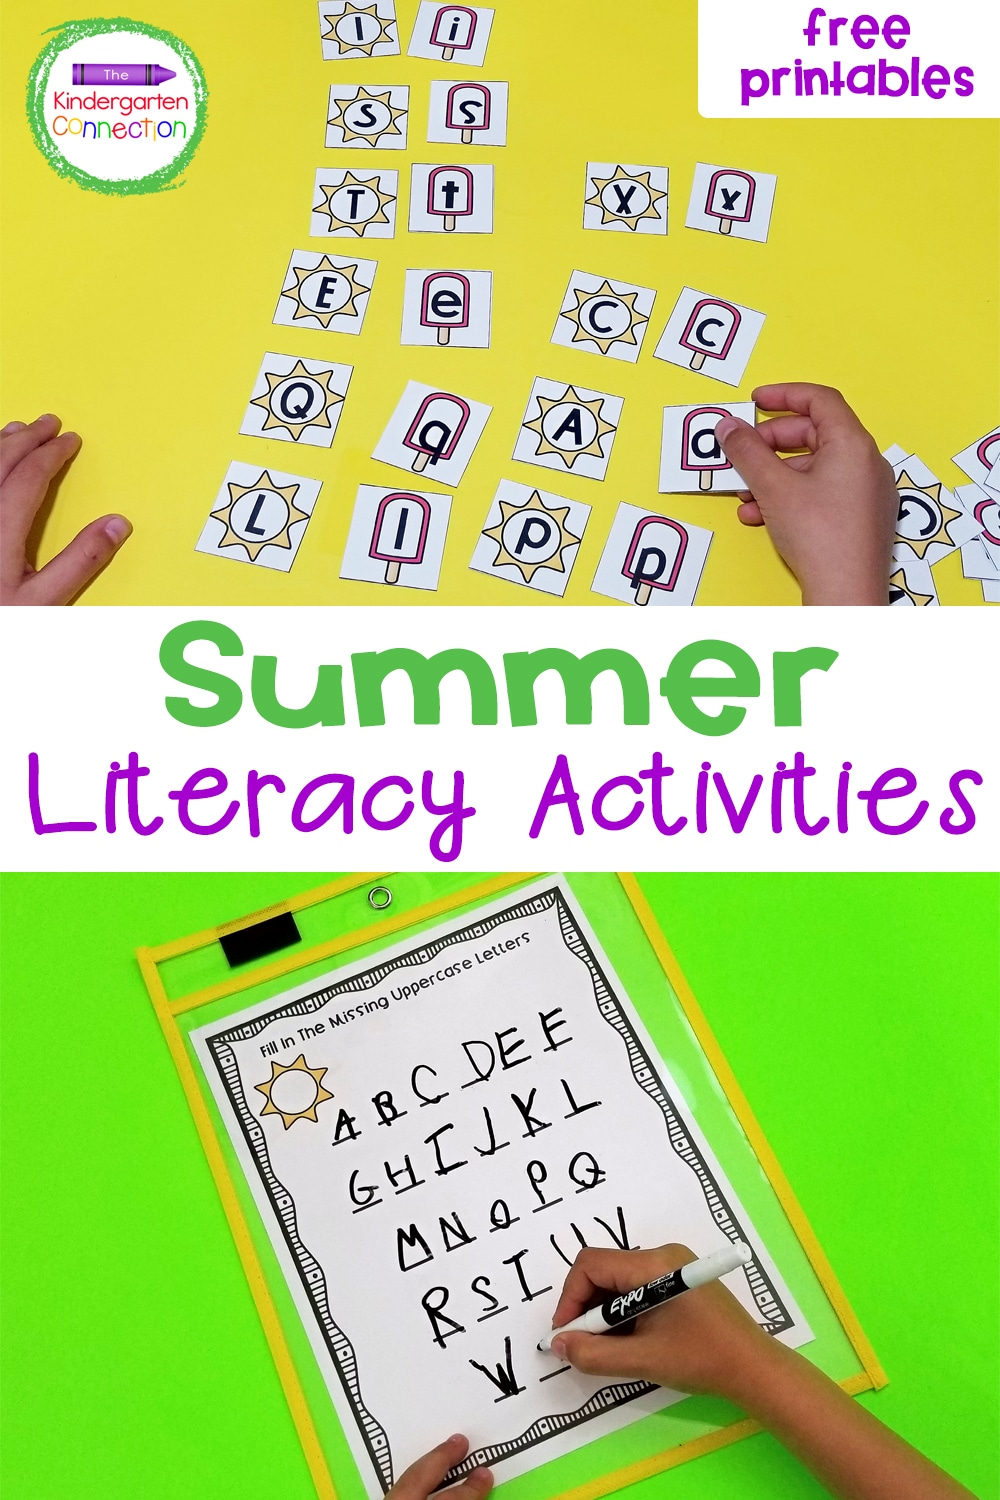 Grab these FREE Alphabet Printables for Summer and keep skills sharp over break. They're also perfect for small groups and literacy centers!